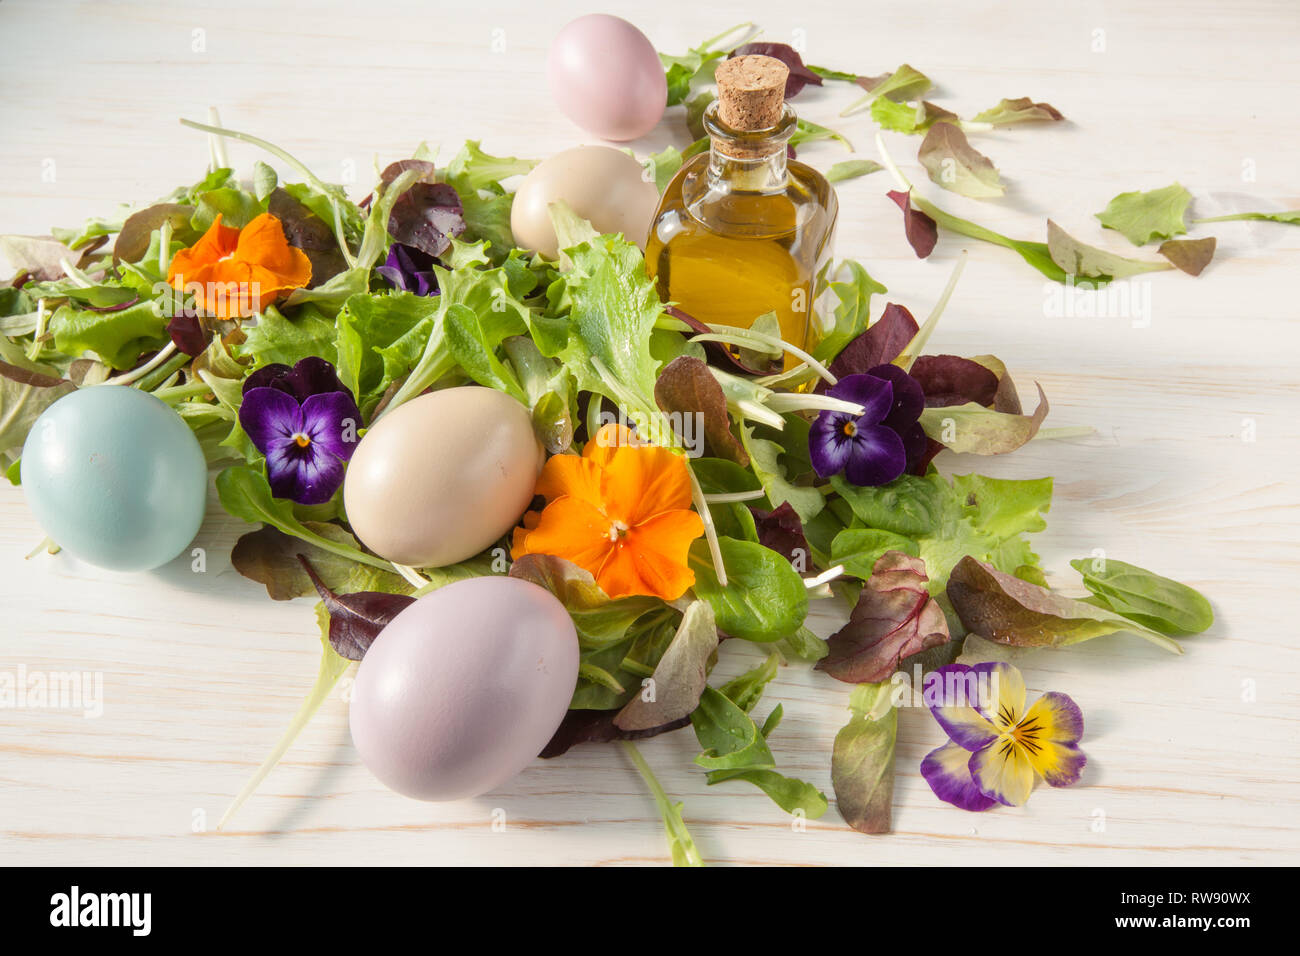 Lettuce and flower salad on woody white background spring, easter - Stock Image